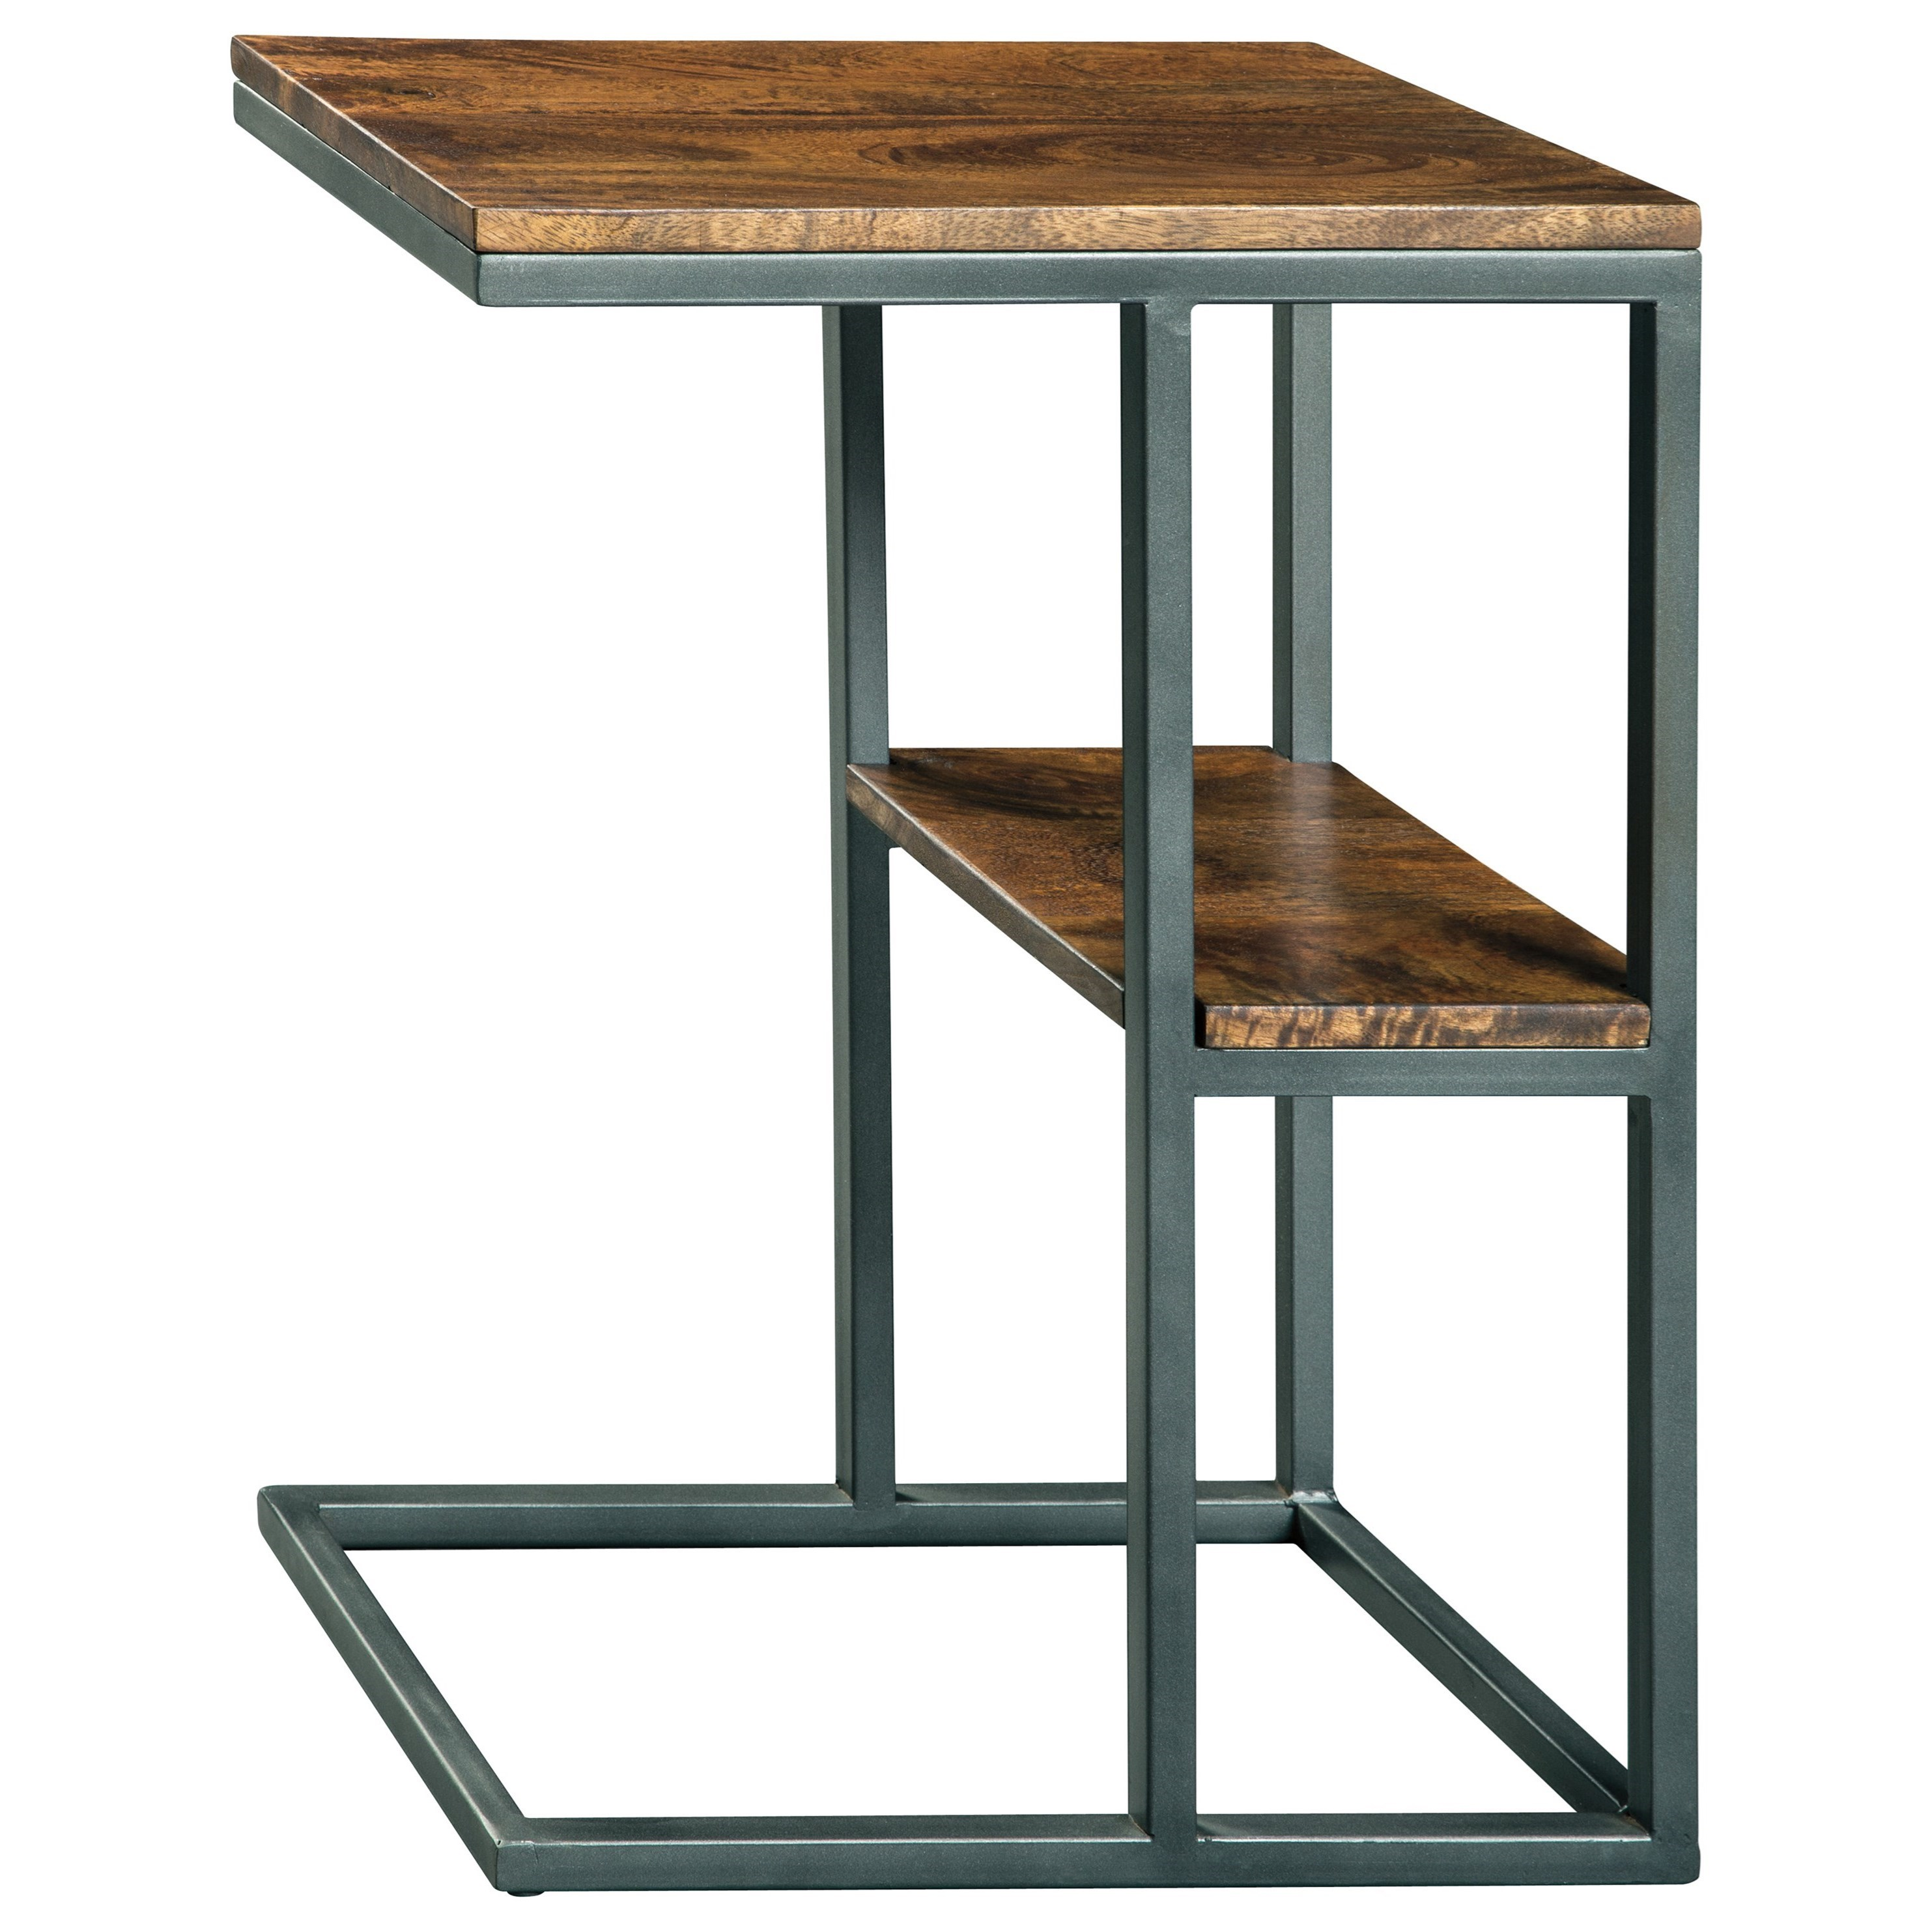 Signature Design by Ashley Forestmin Accent Table - Item Number: A4000049